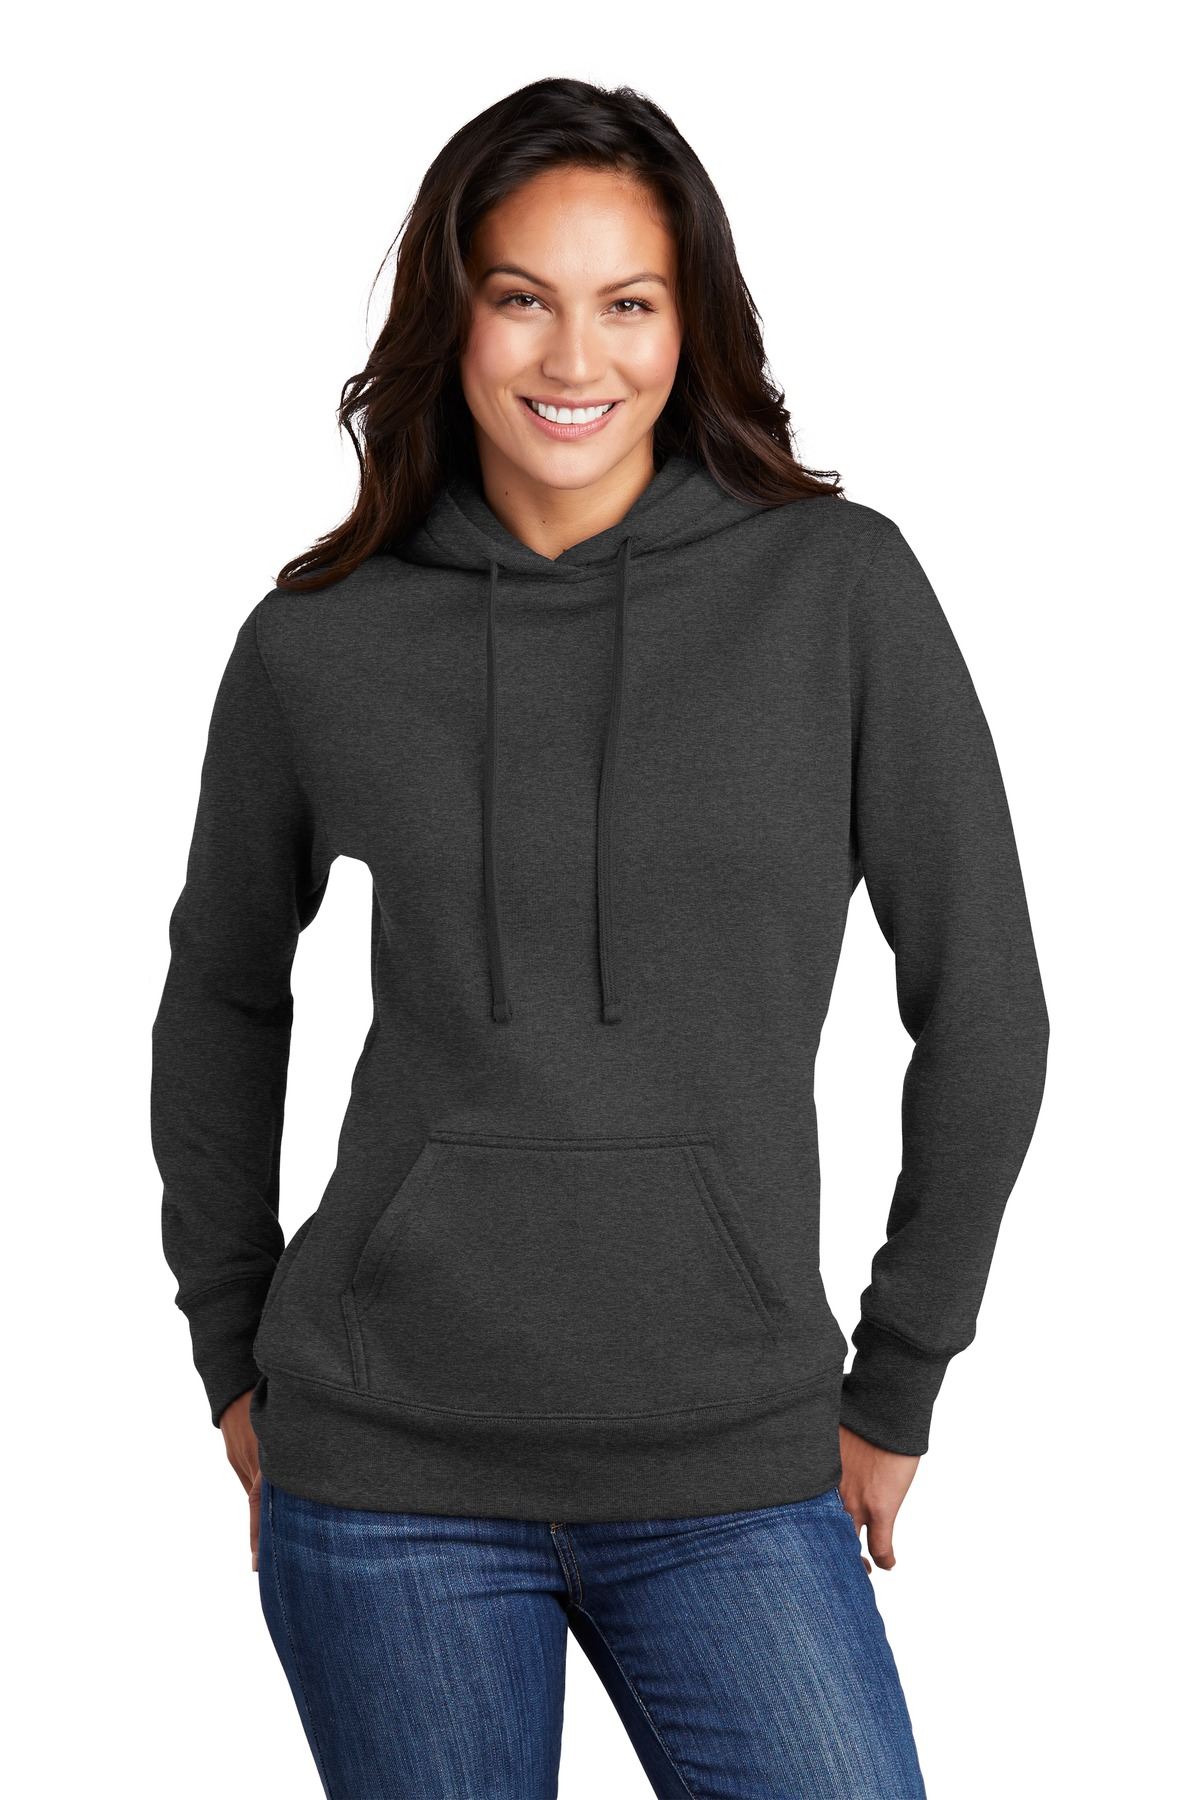 Port & Company  ®  Ladies Core Fleece Pullover Hooded Sweatshirt LPC78H - Dark Heather Grey